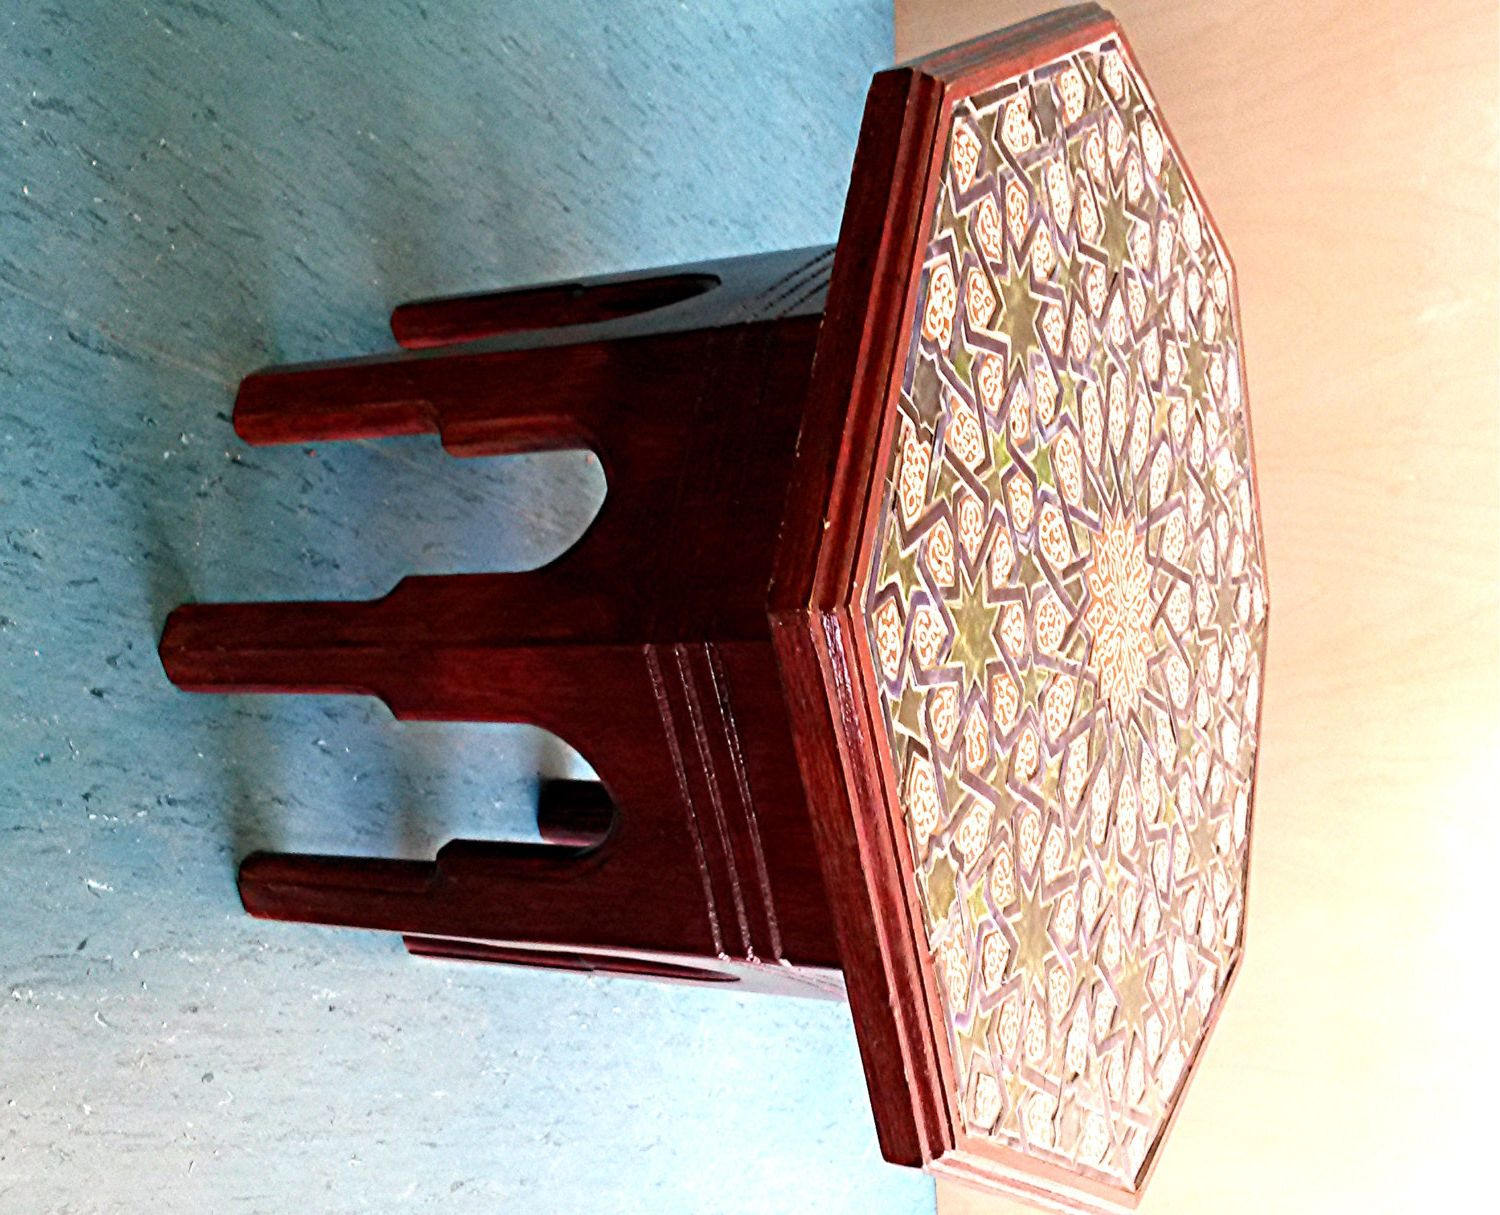 The antique coffee tea table berber benares tray lamp oriental folding - Moroccan Style Ceramic Coffee Table By Camdenshed On Etsy Https Www